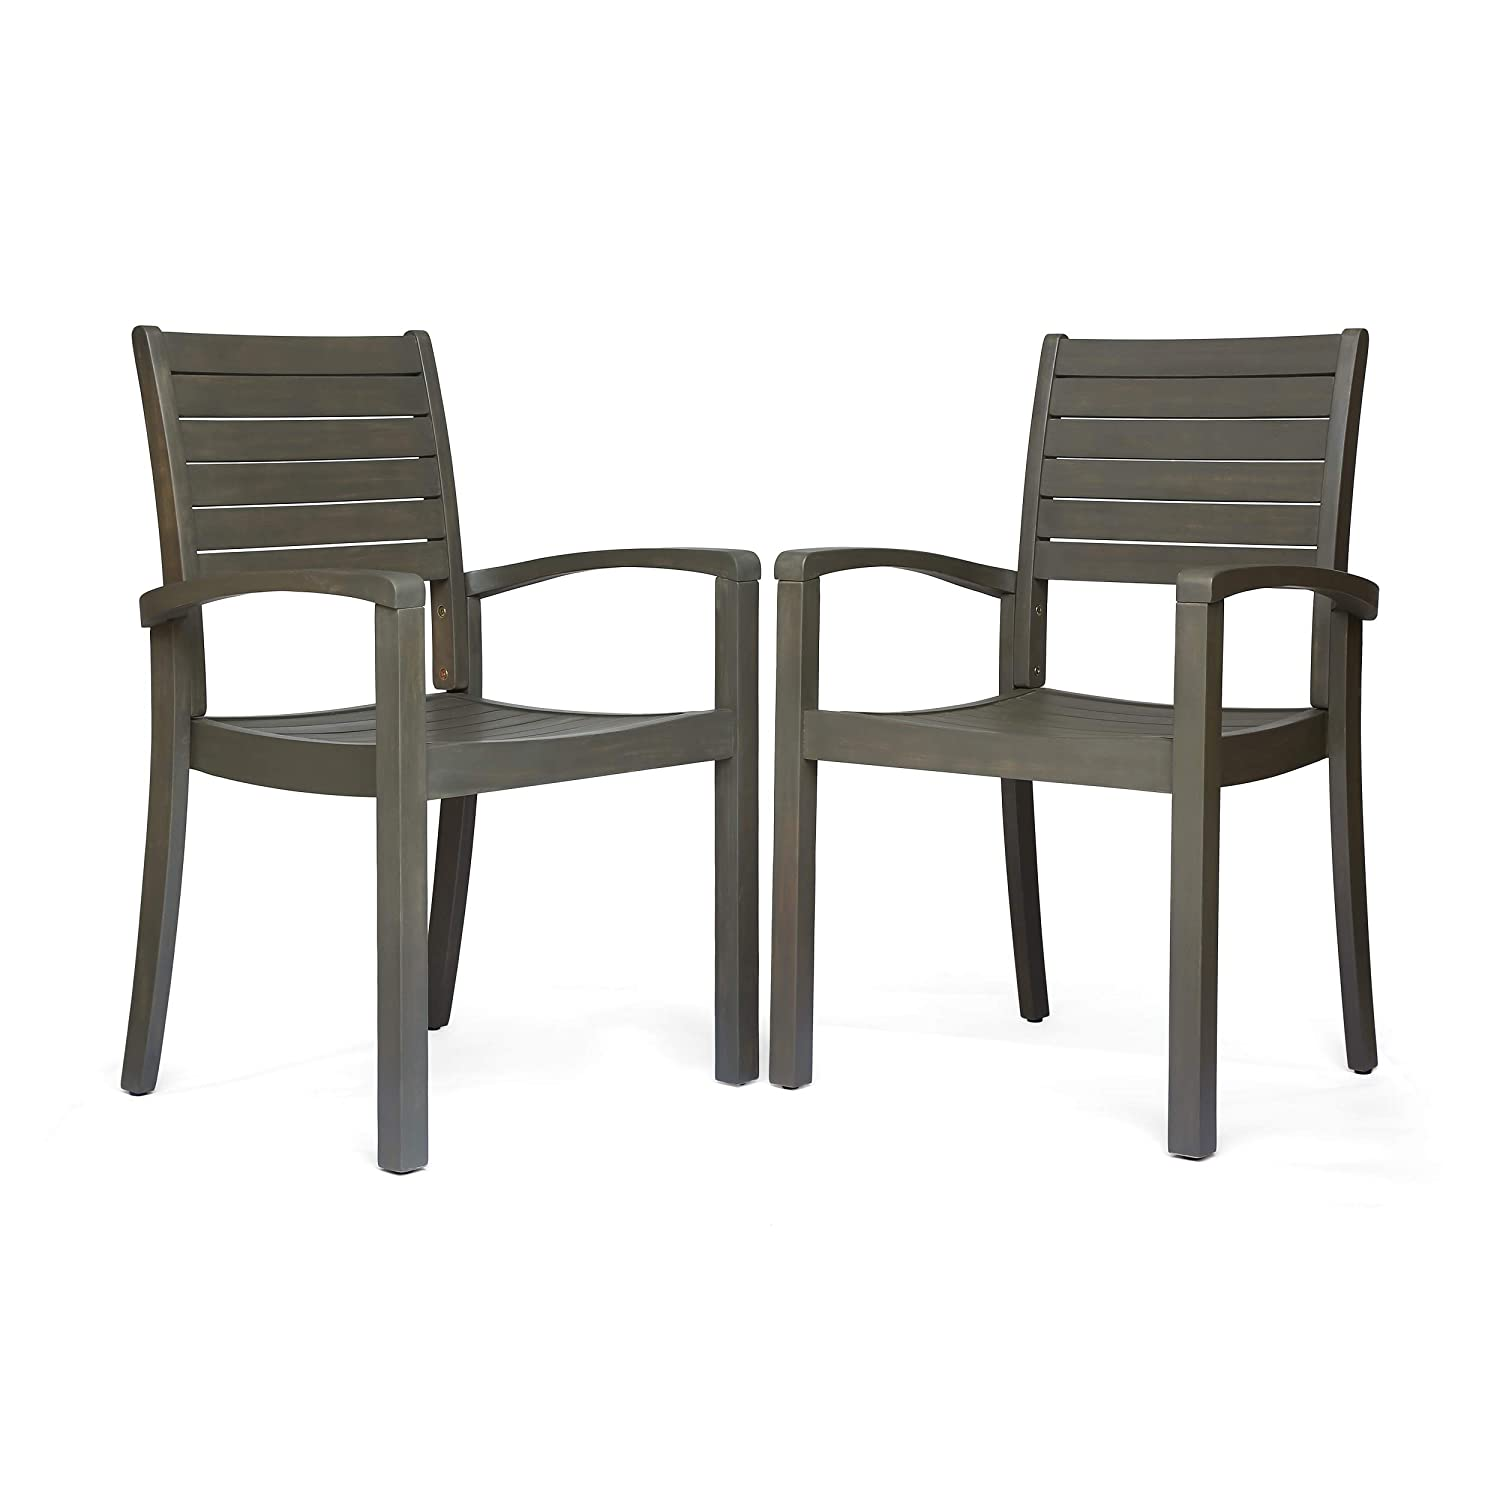 Amazon com great deal furniture watts outdoor acacia wood dining chairs gray finish set of 2 garden outdoor